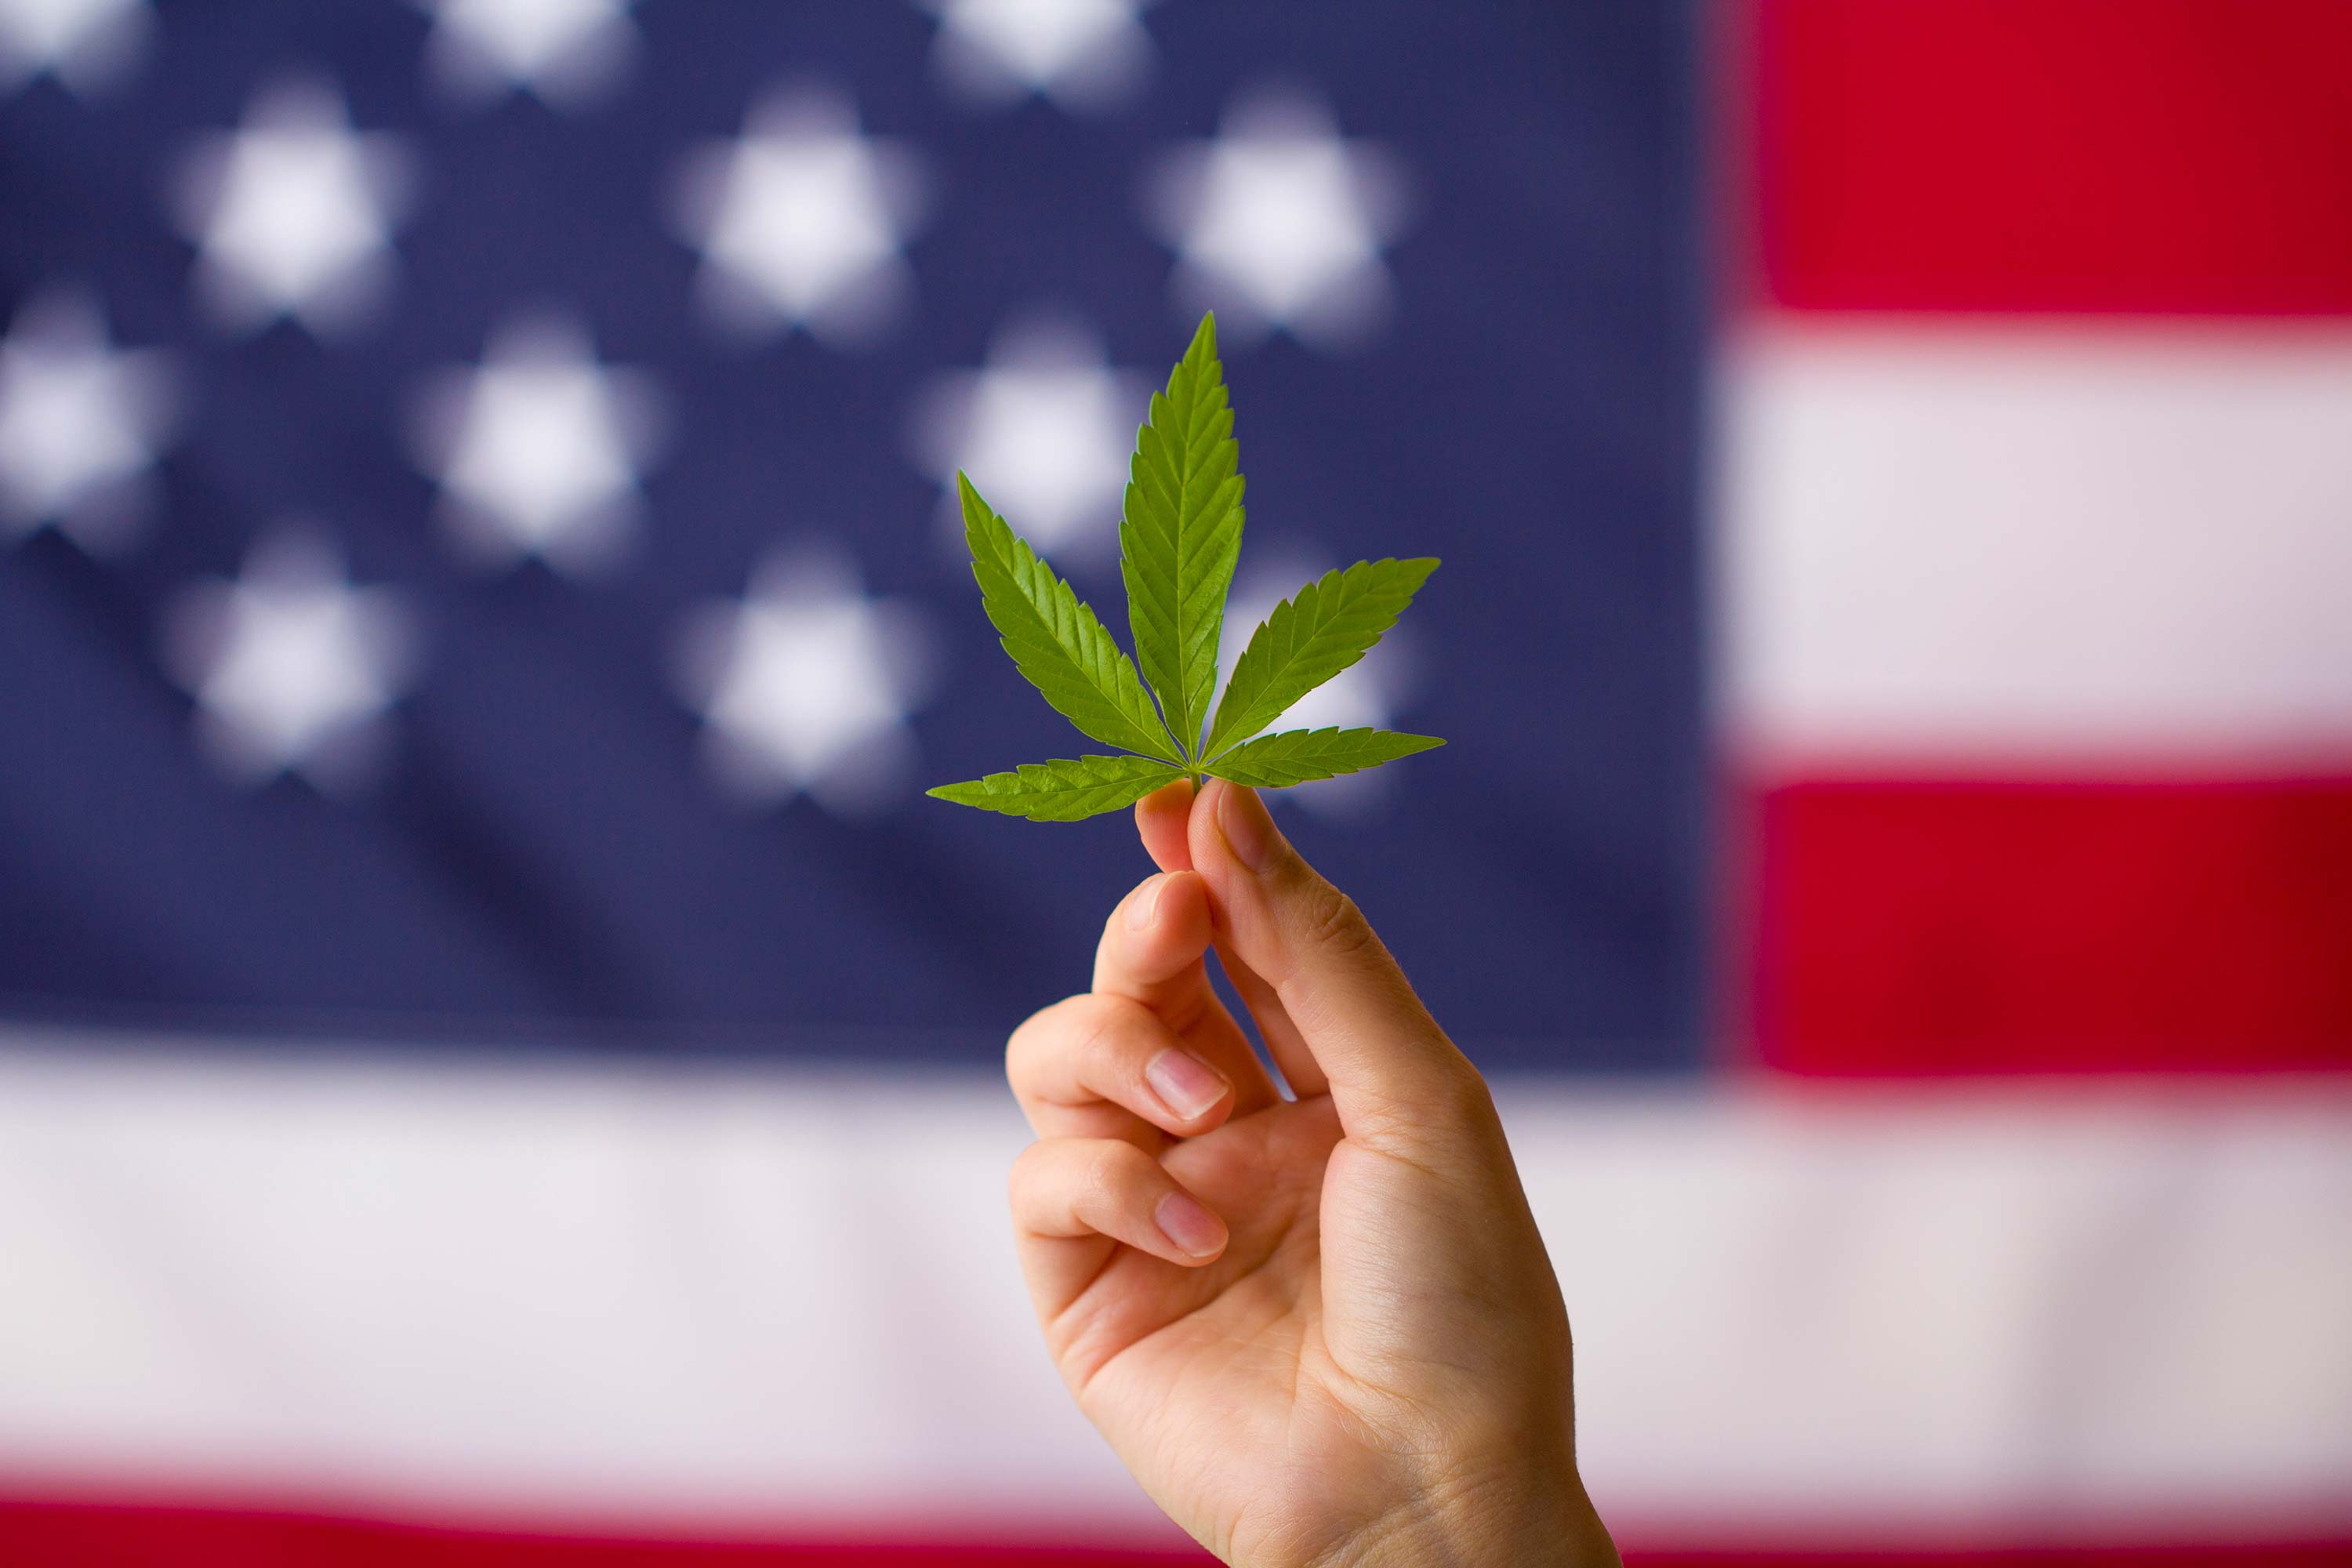 Photo for The Uprising: The Legalization of Cannabis in Rhode Island